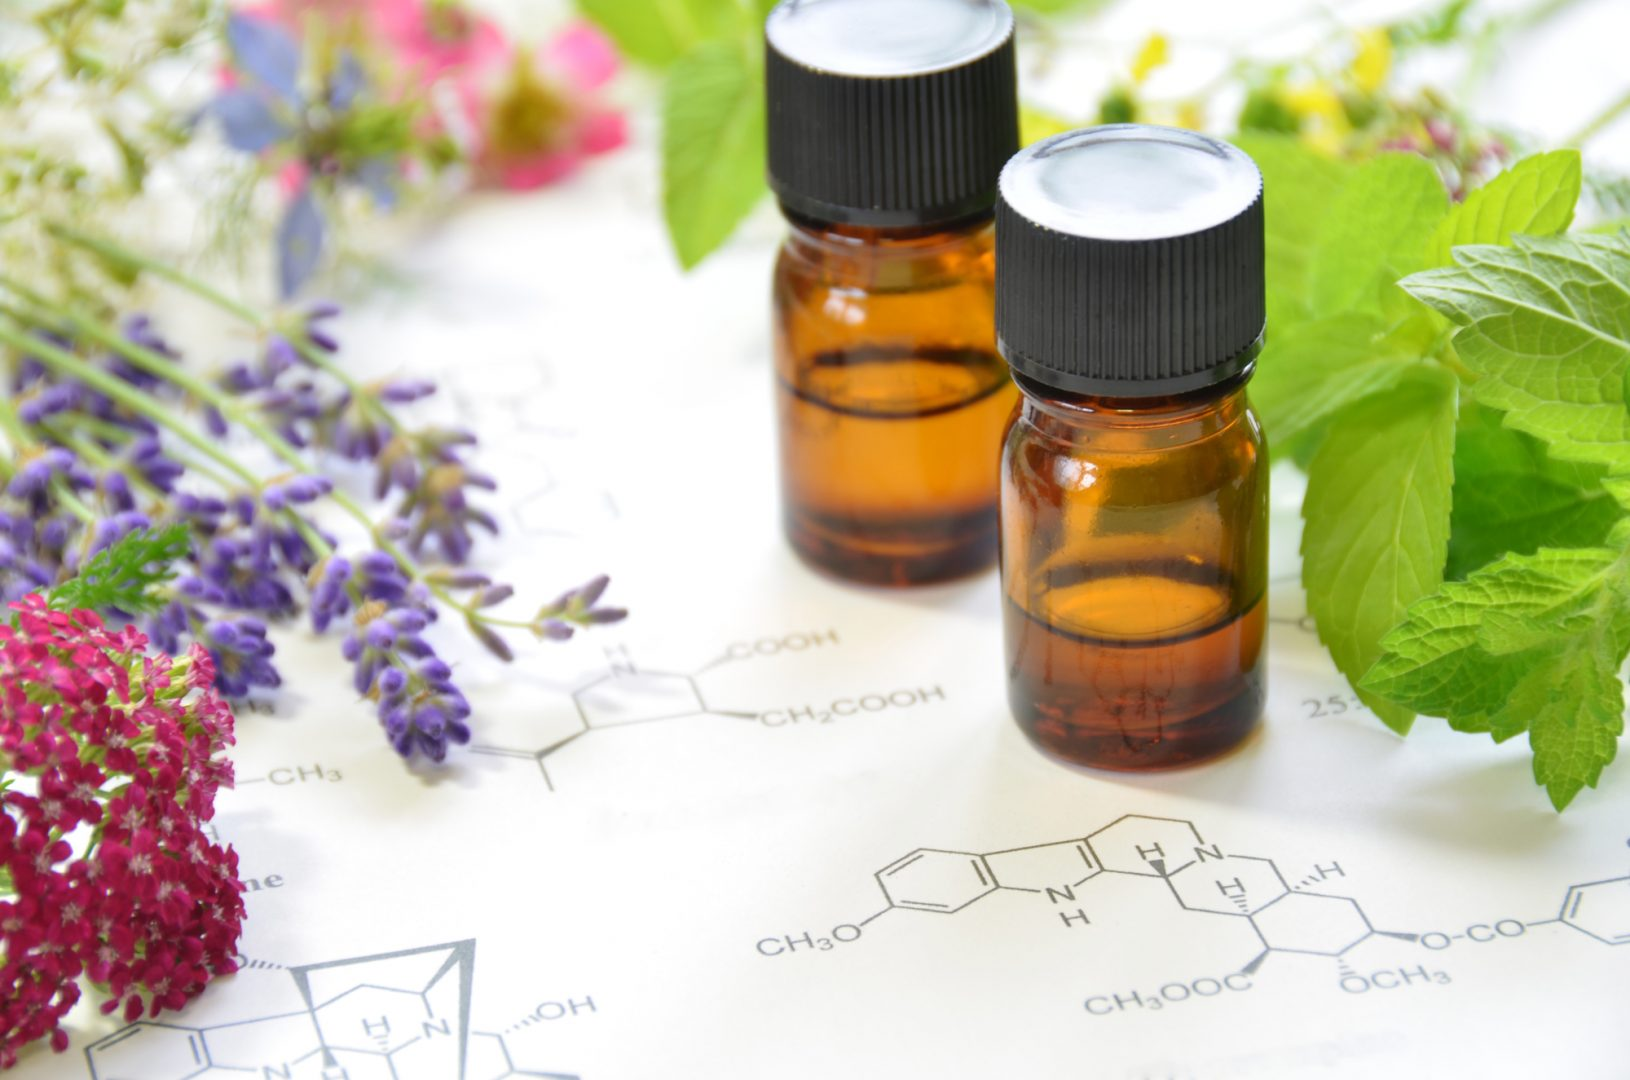 A Tale of CBD Oil and the Terpene